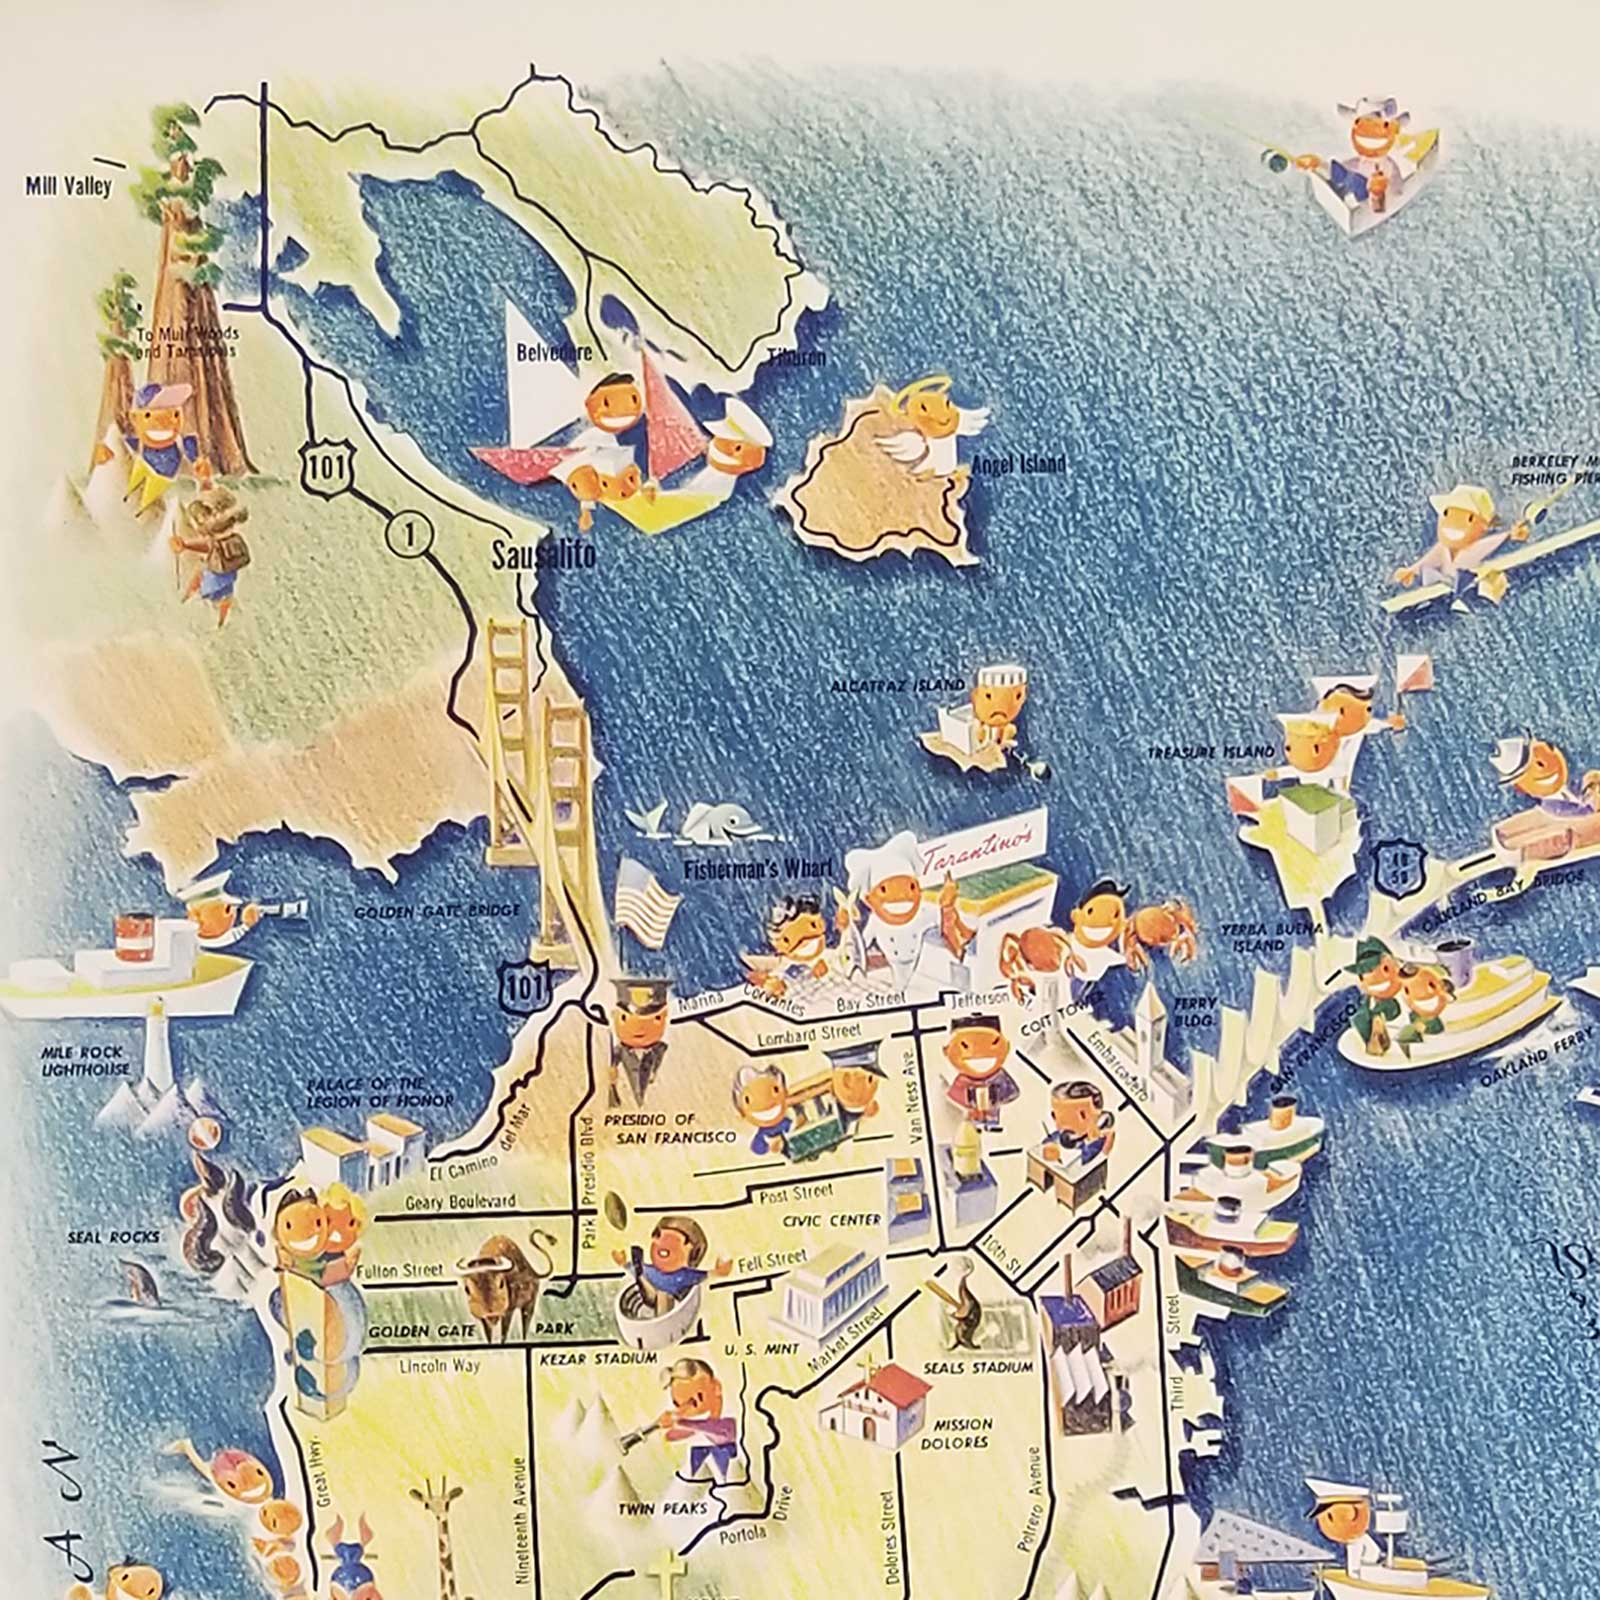 Picture of: Tarantino S Map Of San Francisco And The Bay Area By California San Francisco Lindsay Charlie Mapmaker 1950 Map Old Imprints Abaa Ilab